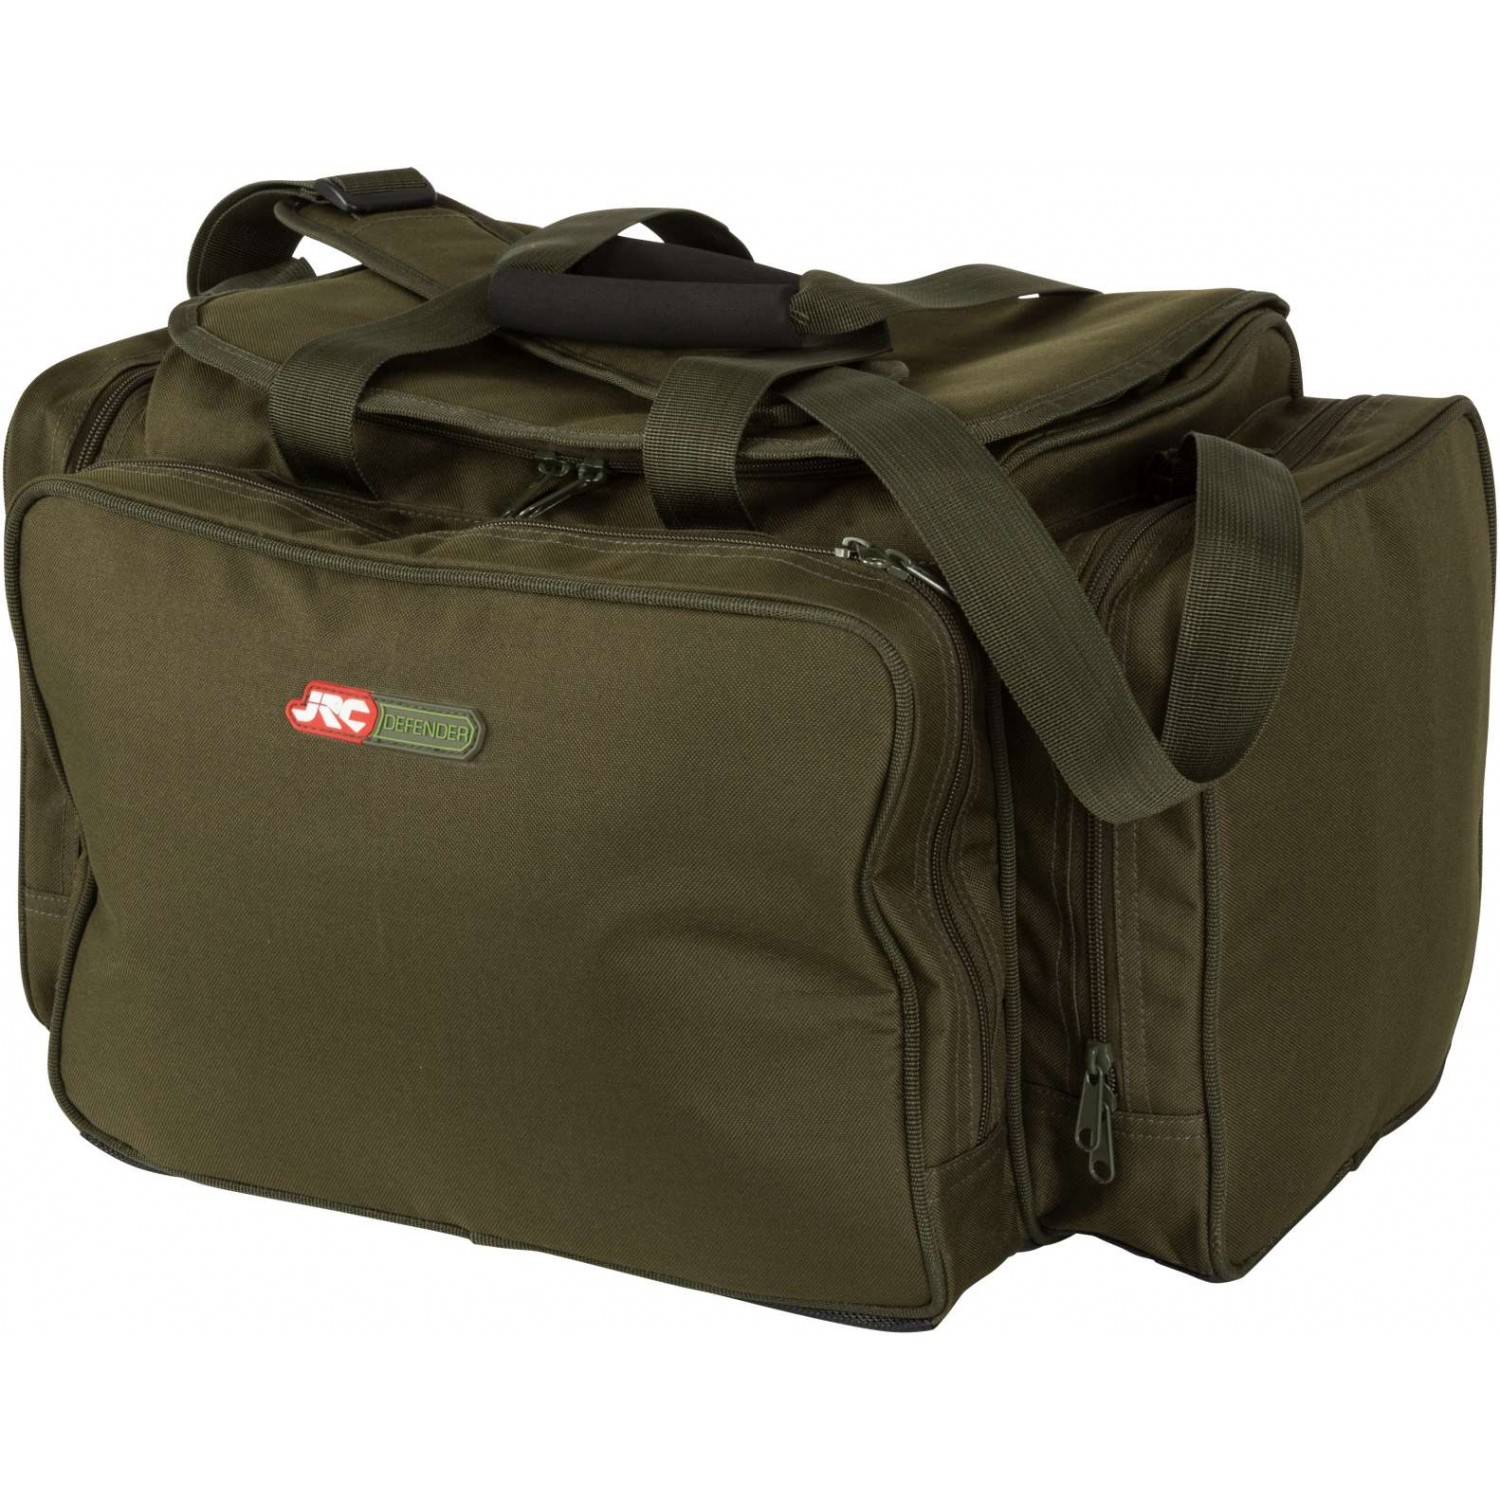 Jrc Defender Compact Carryall